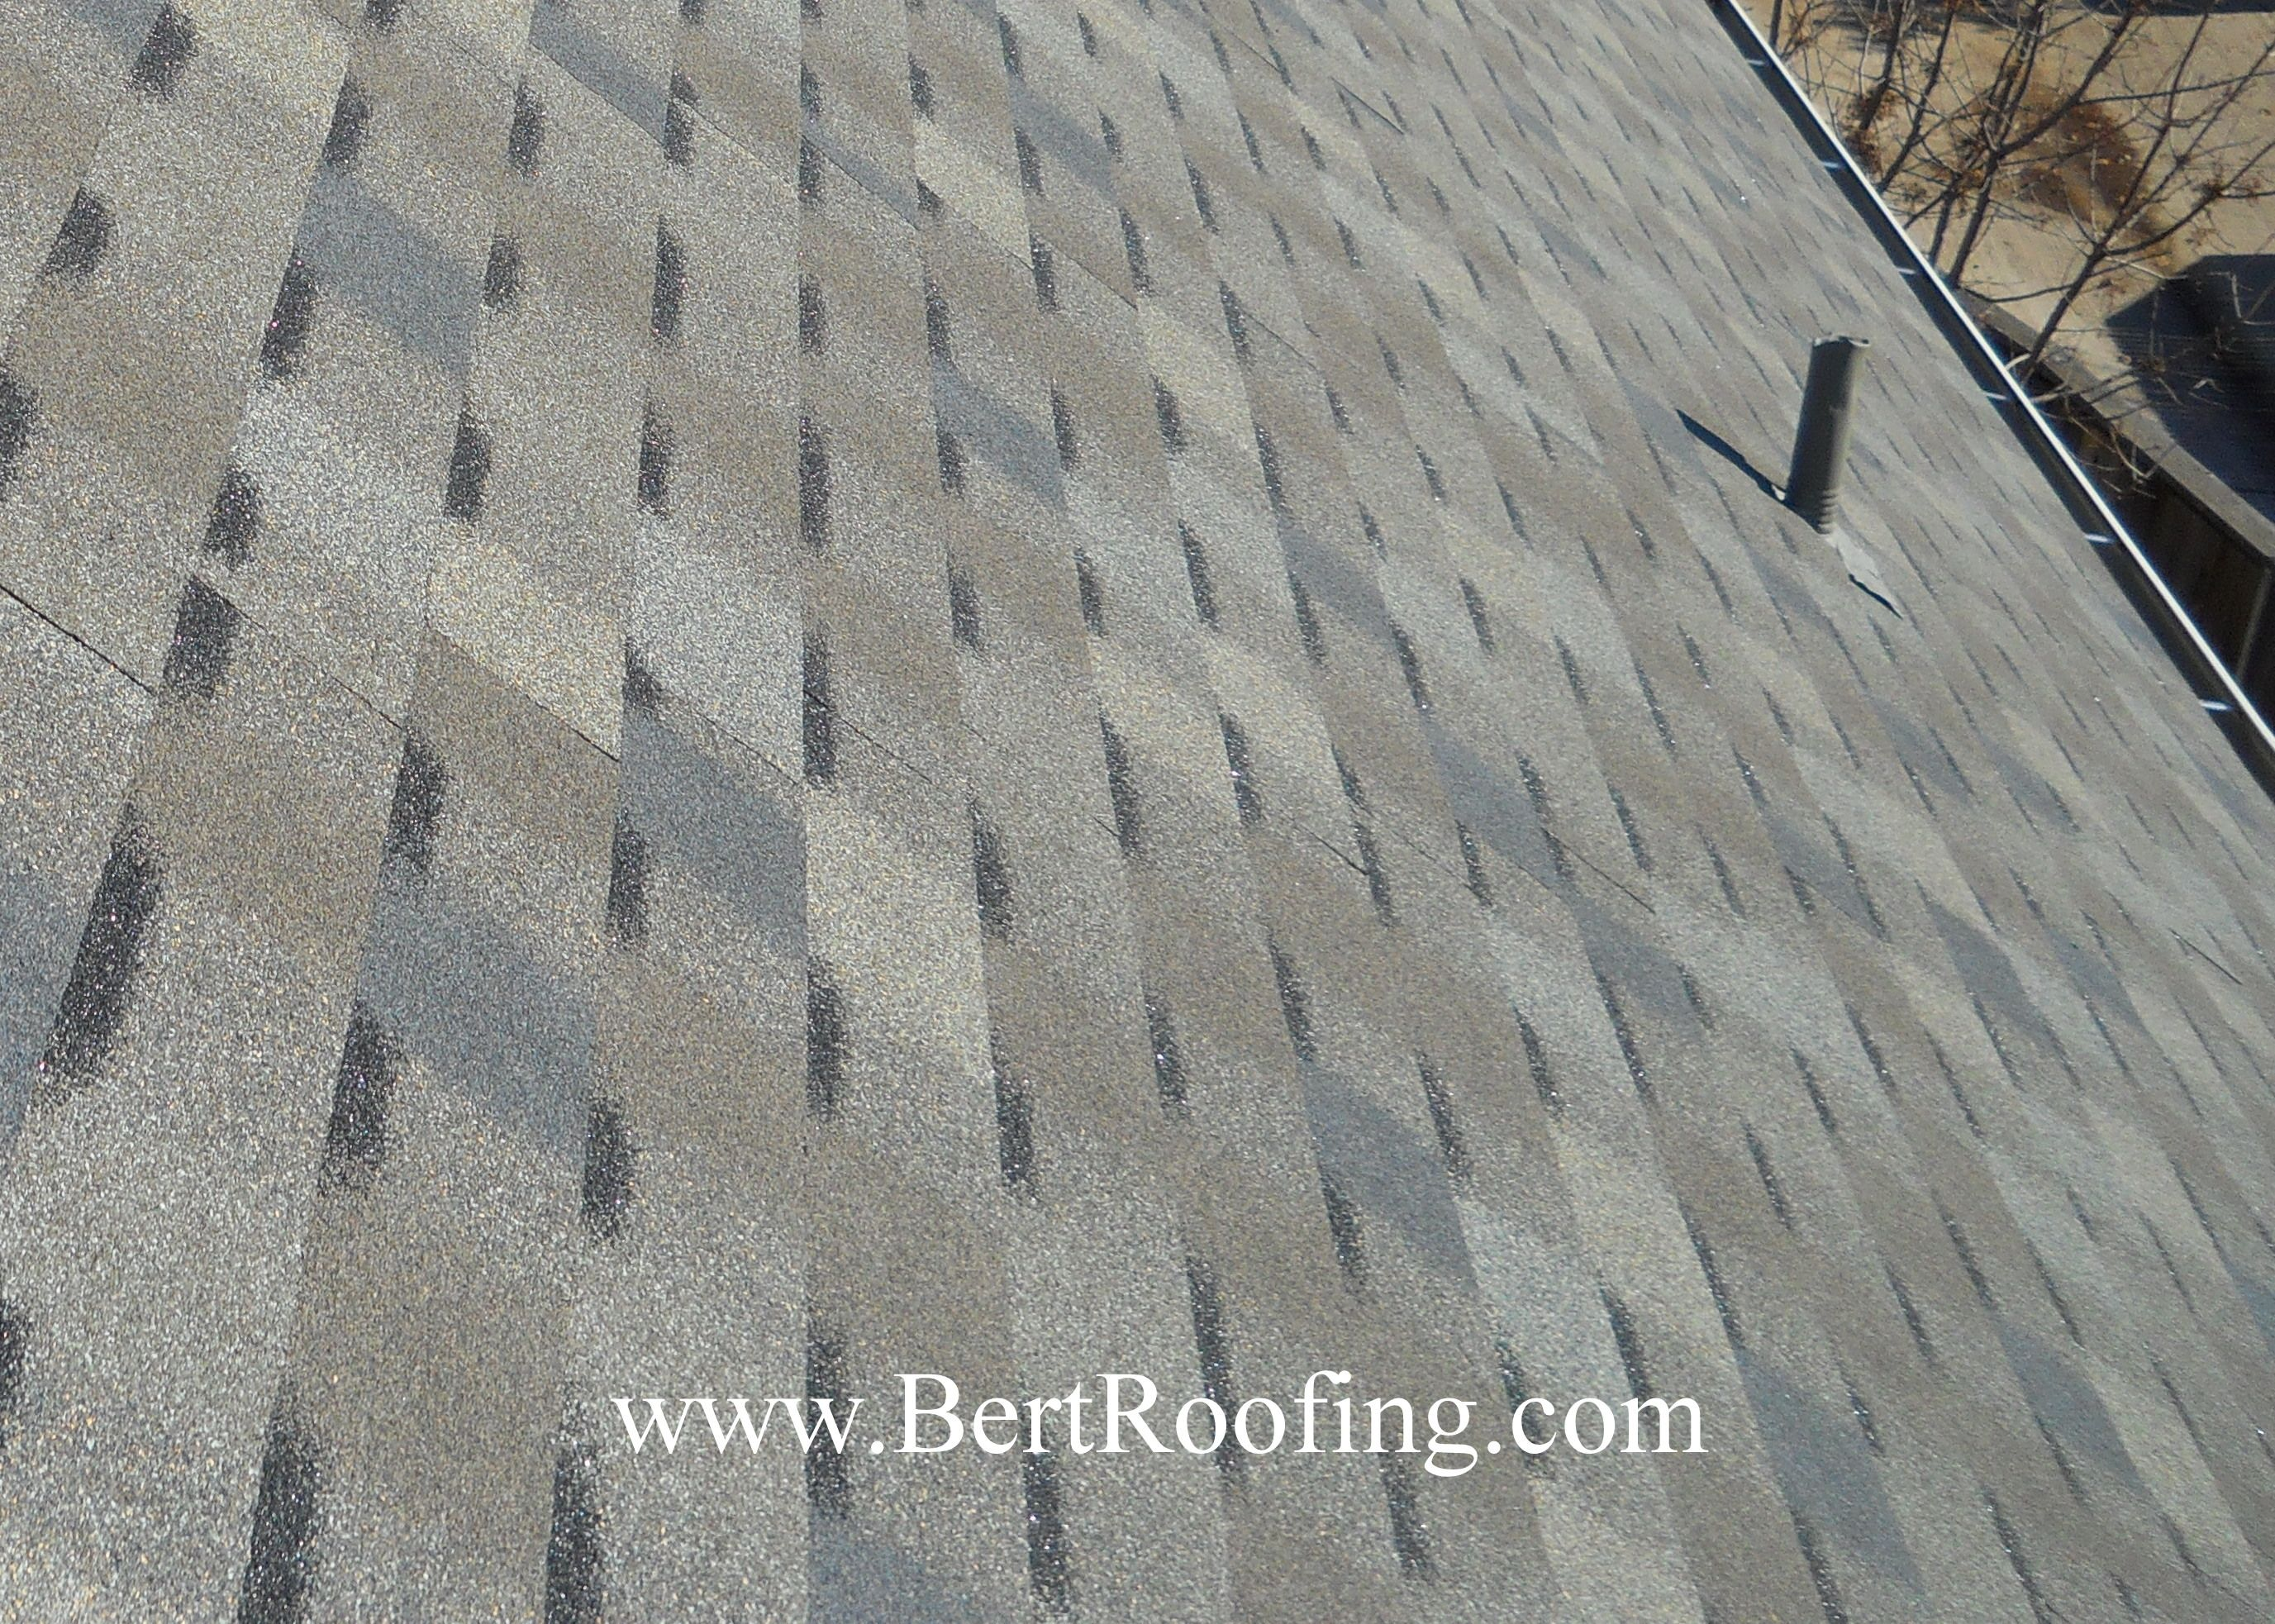 Certainteed Patriot Composition Shingle Color Weathered Wood Installed By Bert Roofing Inc Of Dallas In Allen On Roofing Weathered Wood Composition Shingles